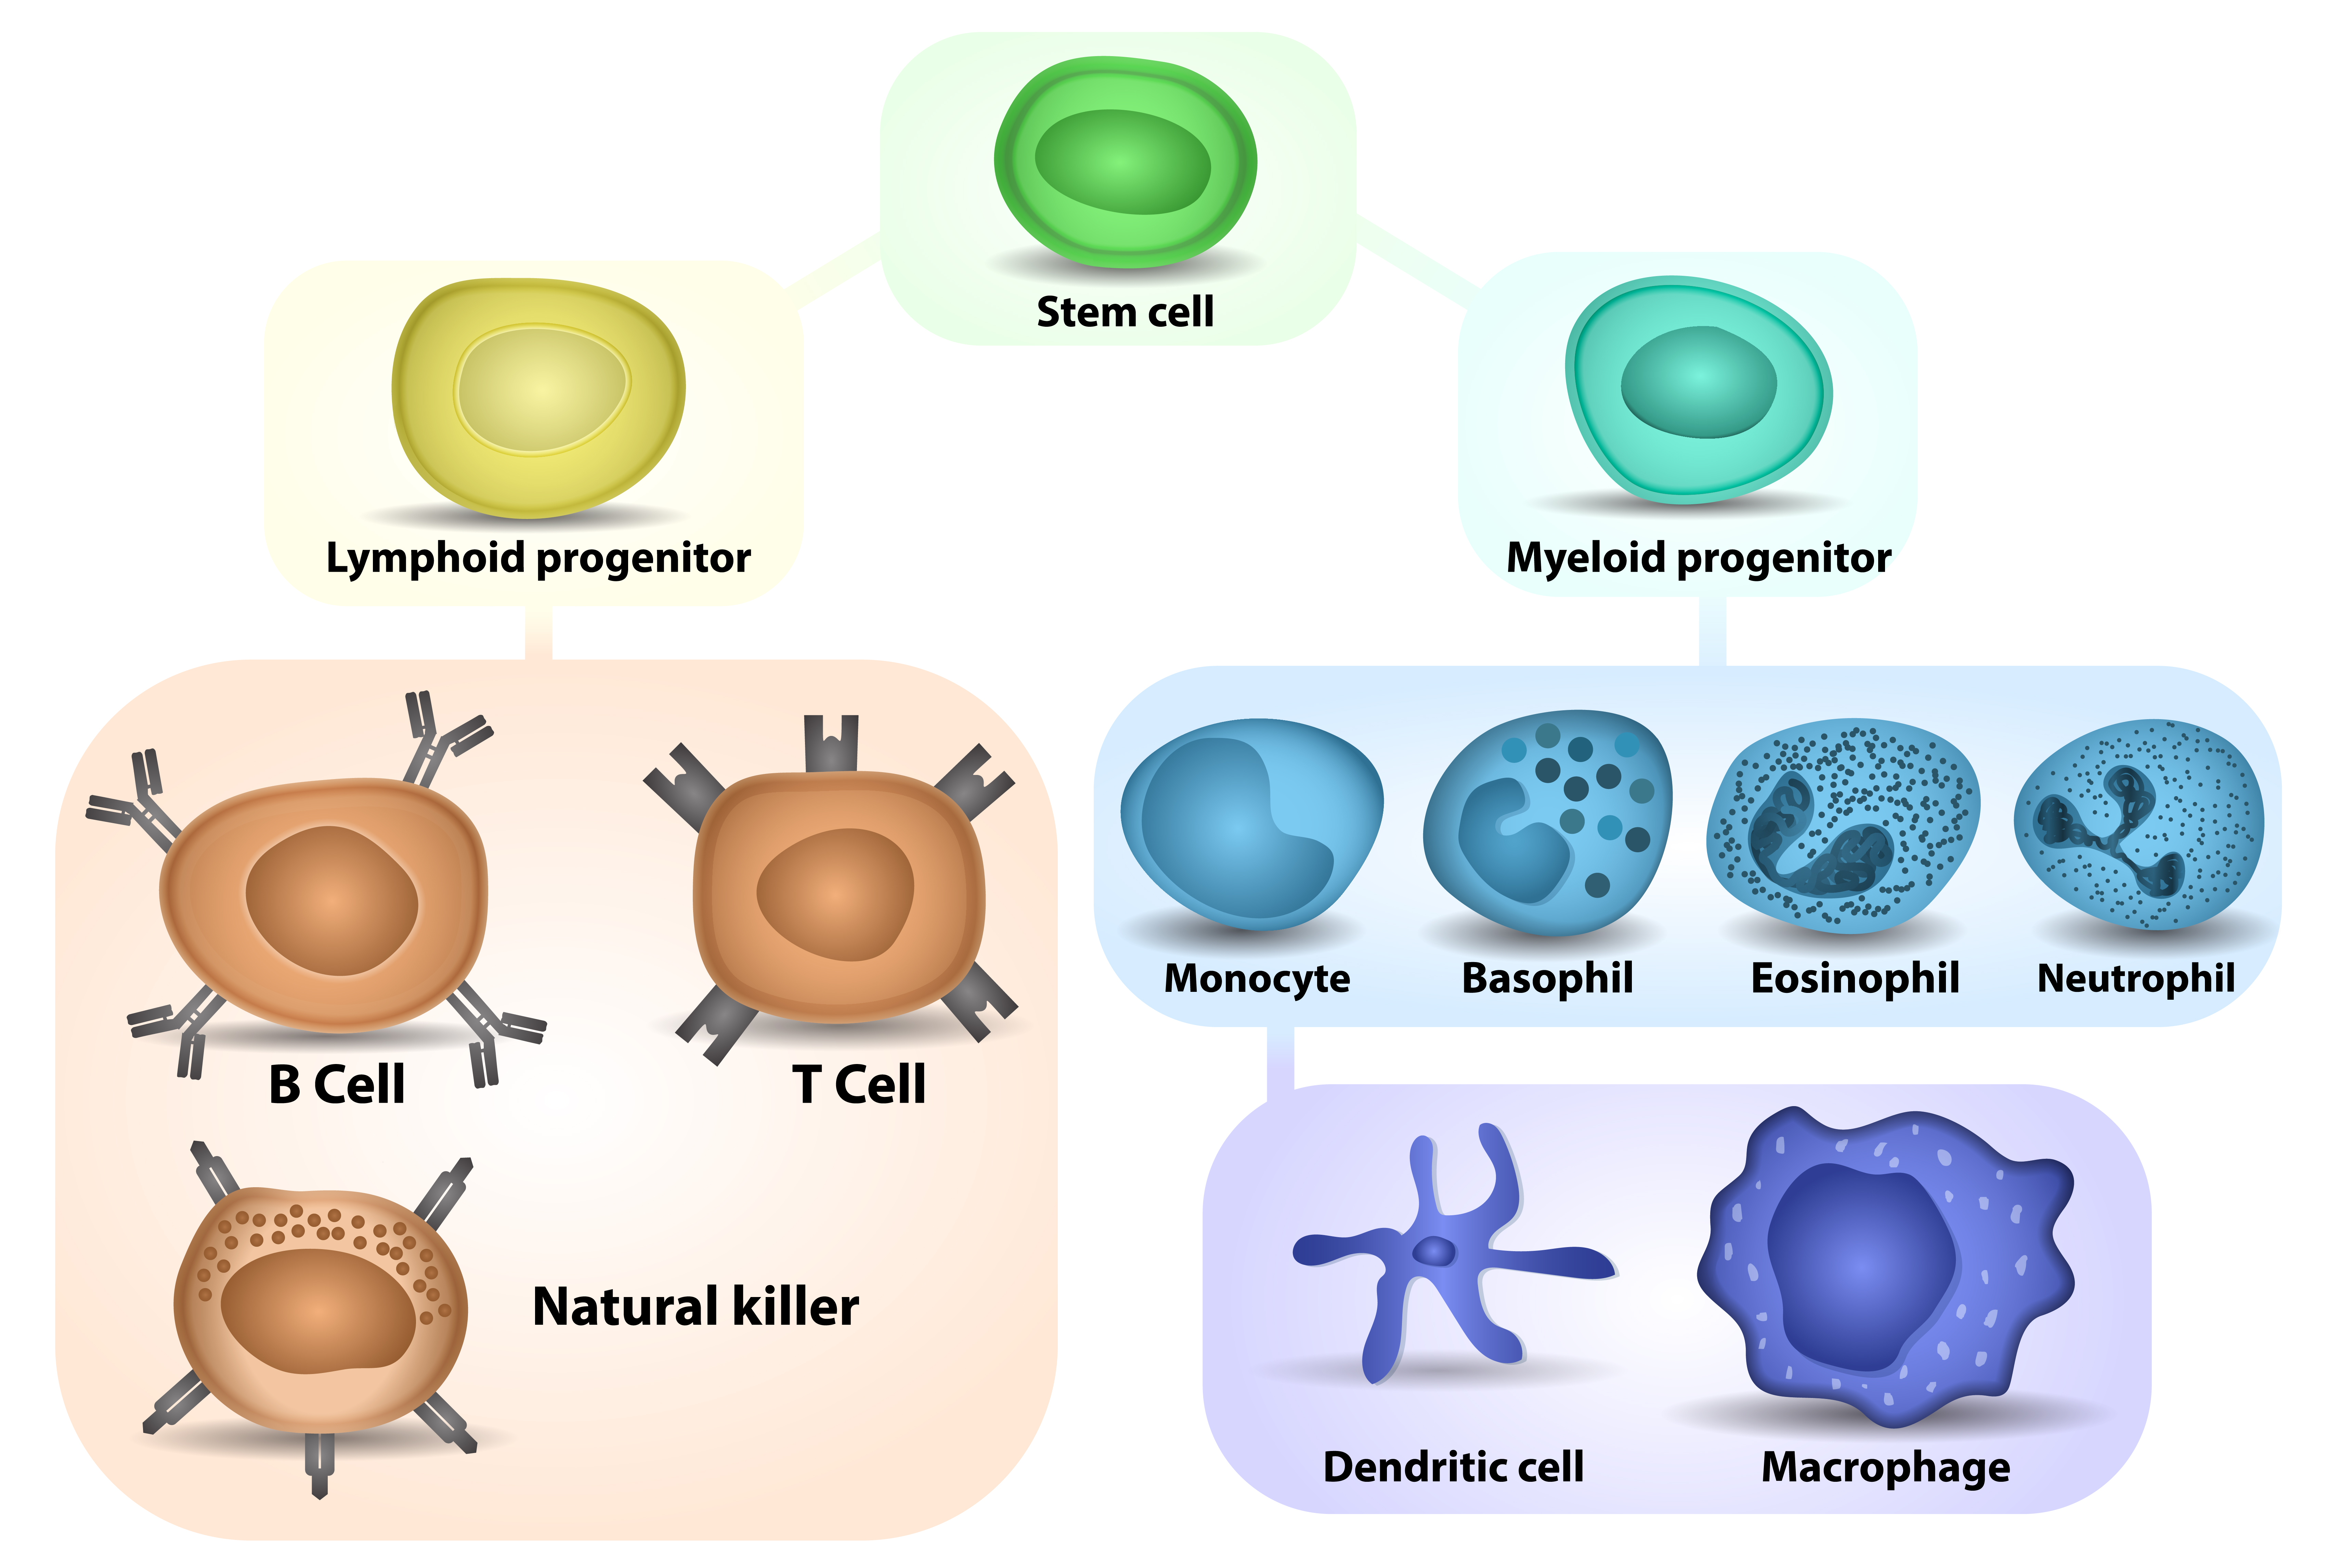 A method to genetically engineer monocytes (20180236)